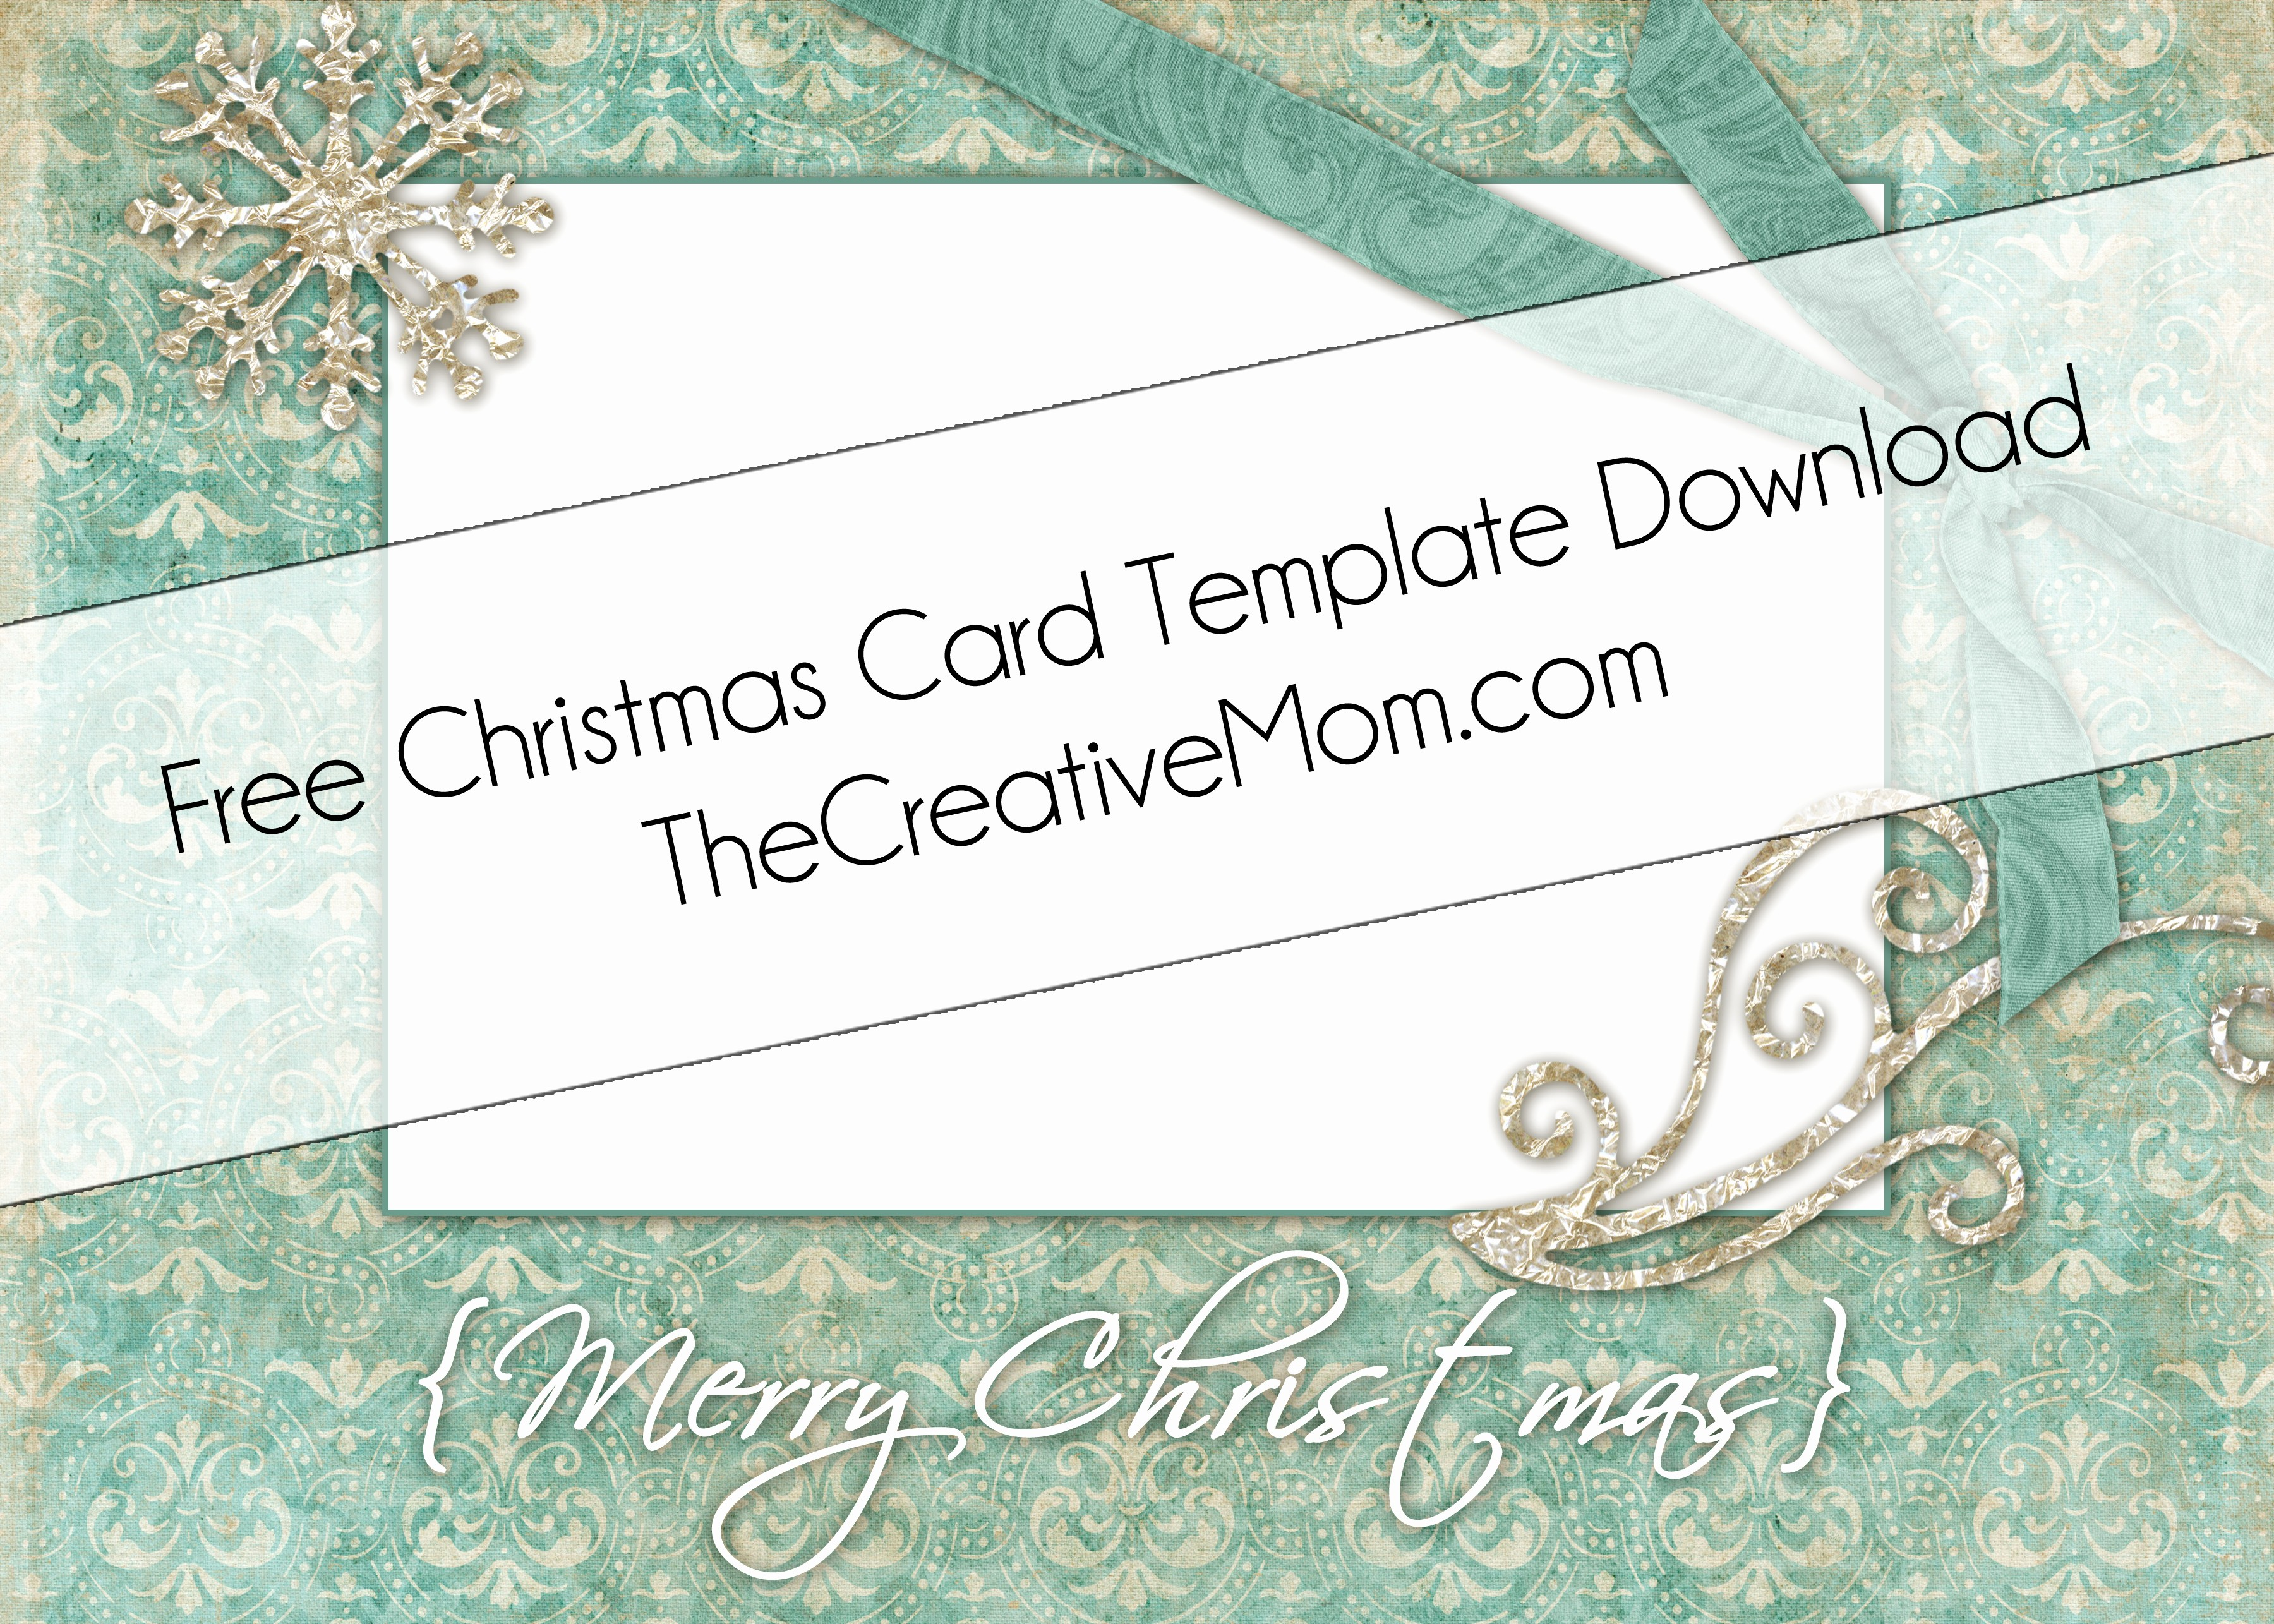 Templates for Cards Free Downloads Luxury Christmas Card Templates Free Download the Creative Mom